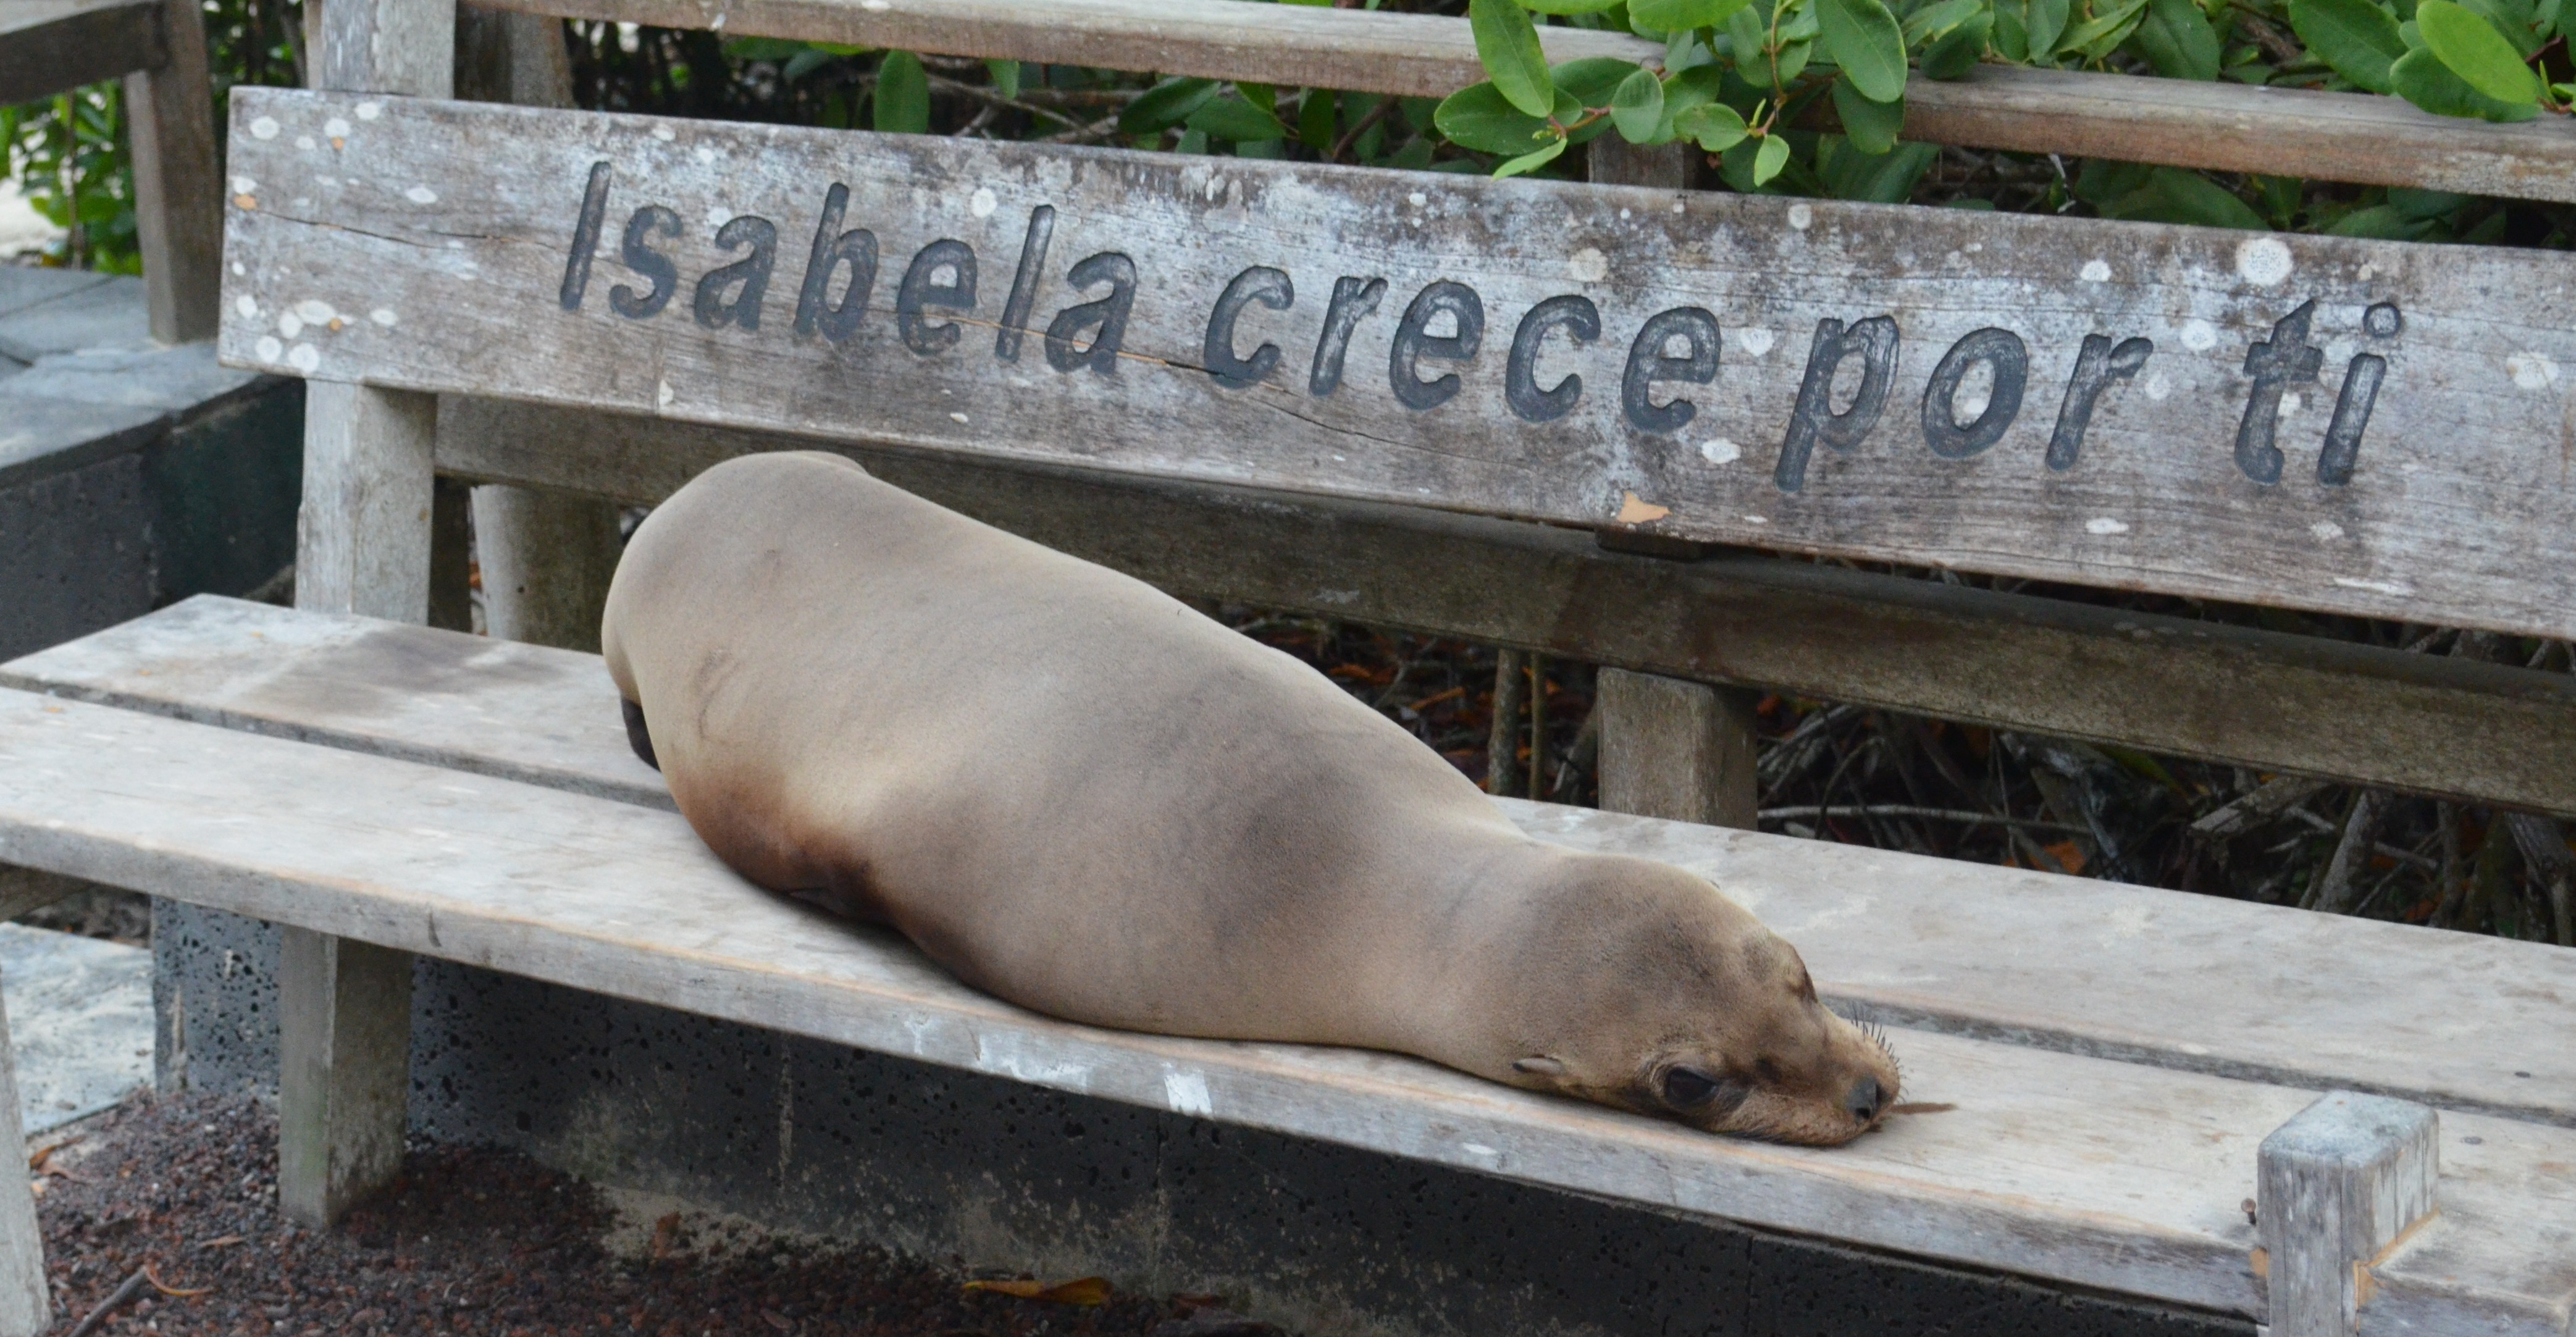 A sea lion lays on a bench